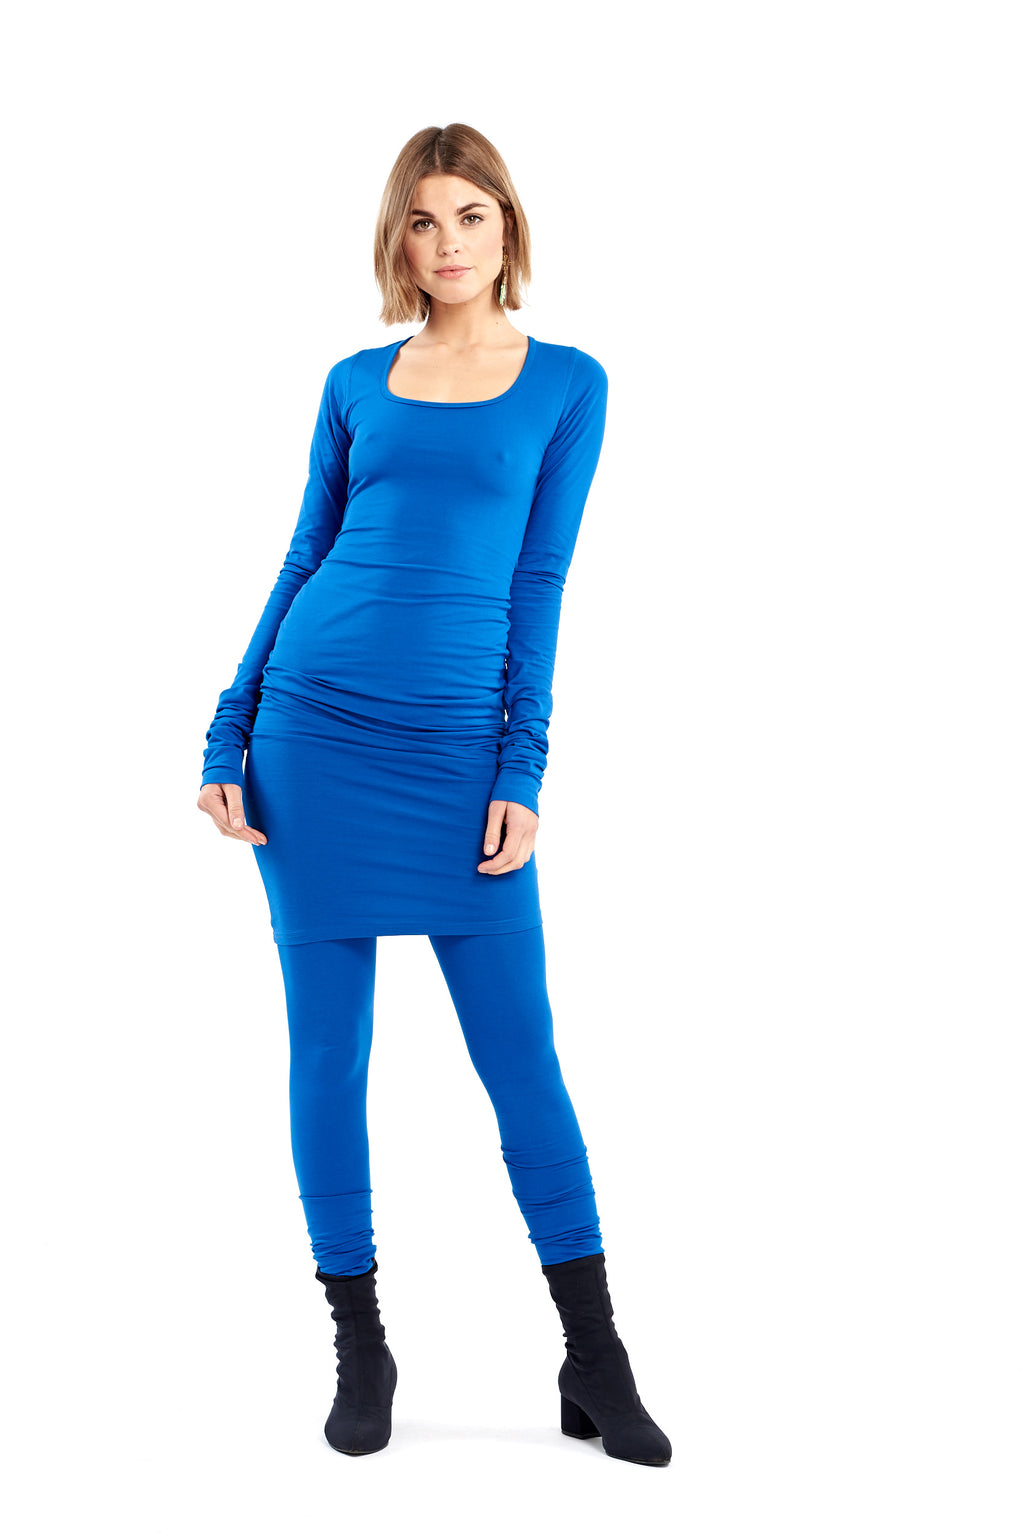 Organic Bamboo NYC Dress Cobalt Blue - MUDRA